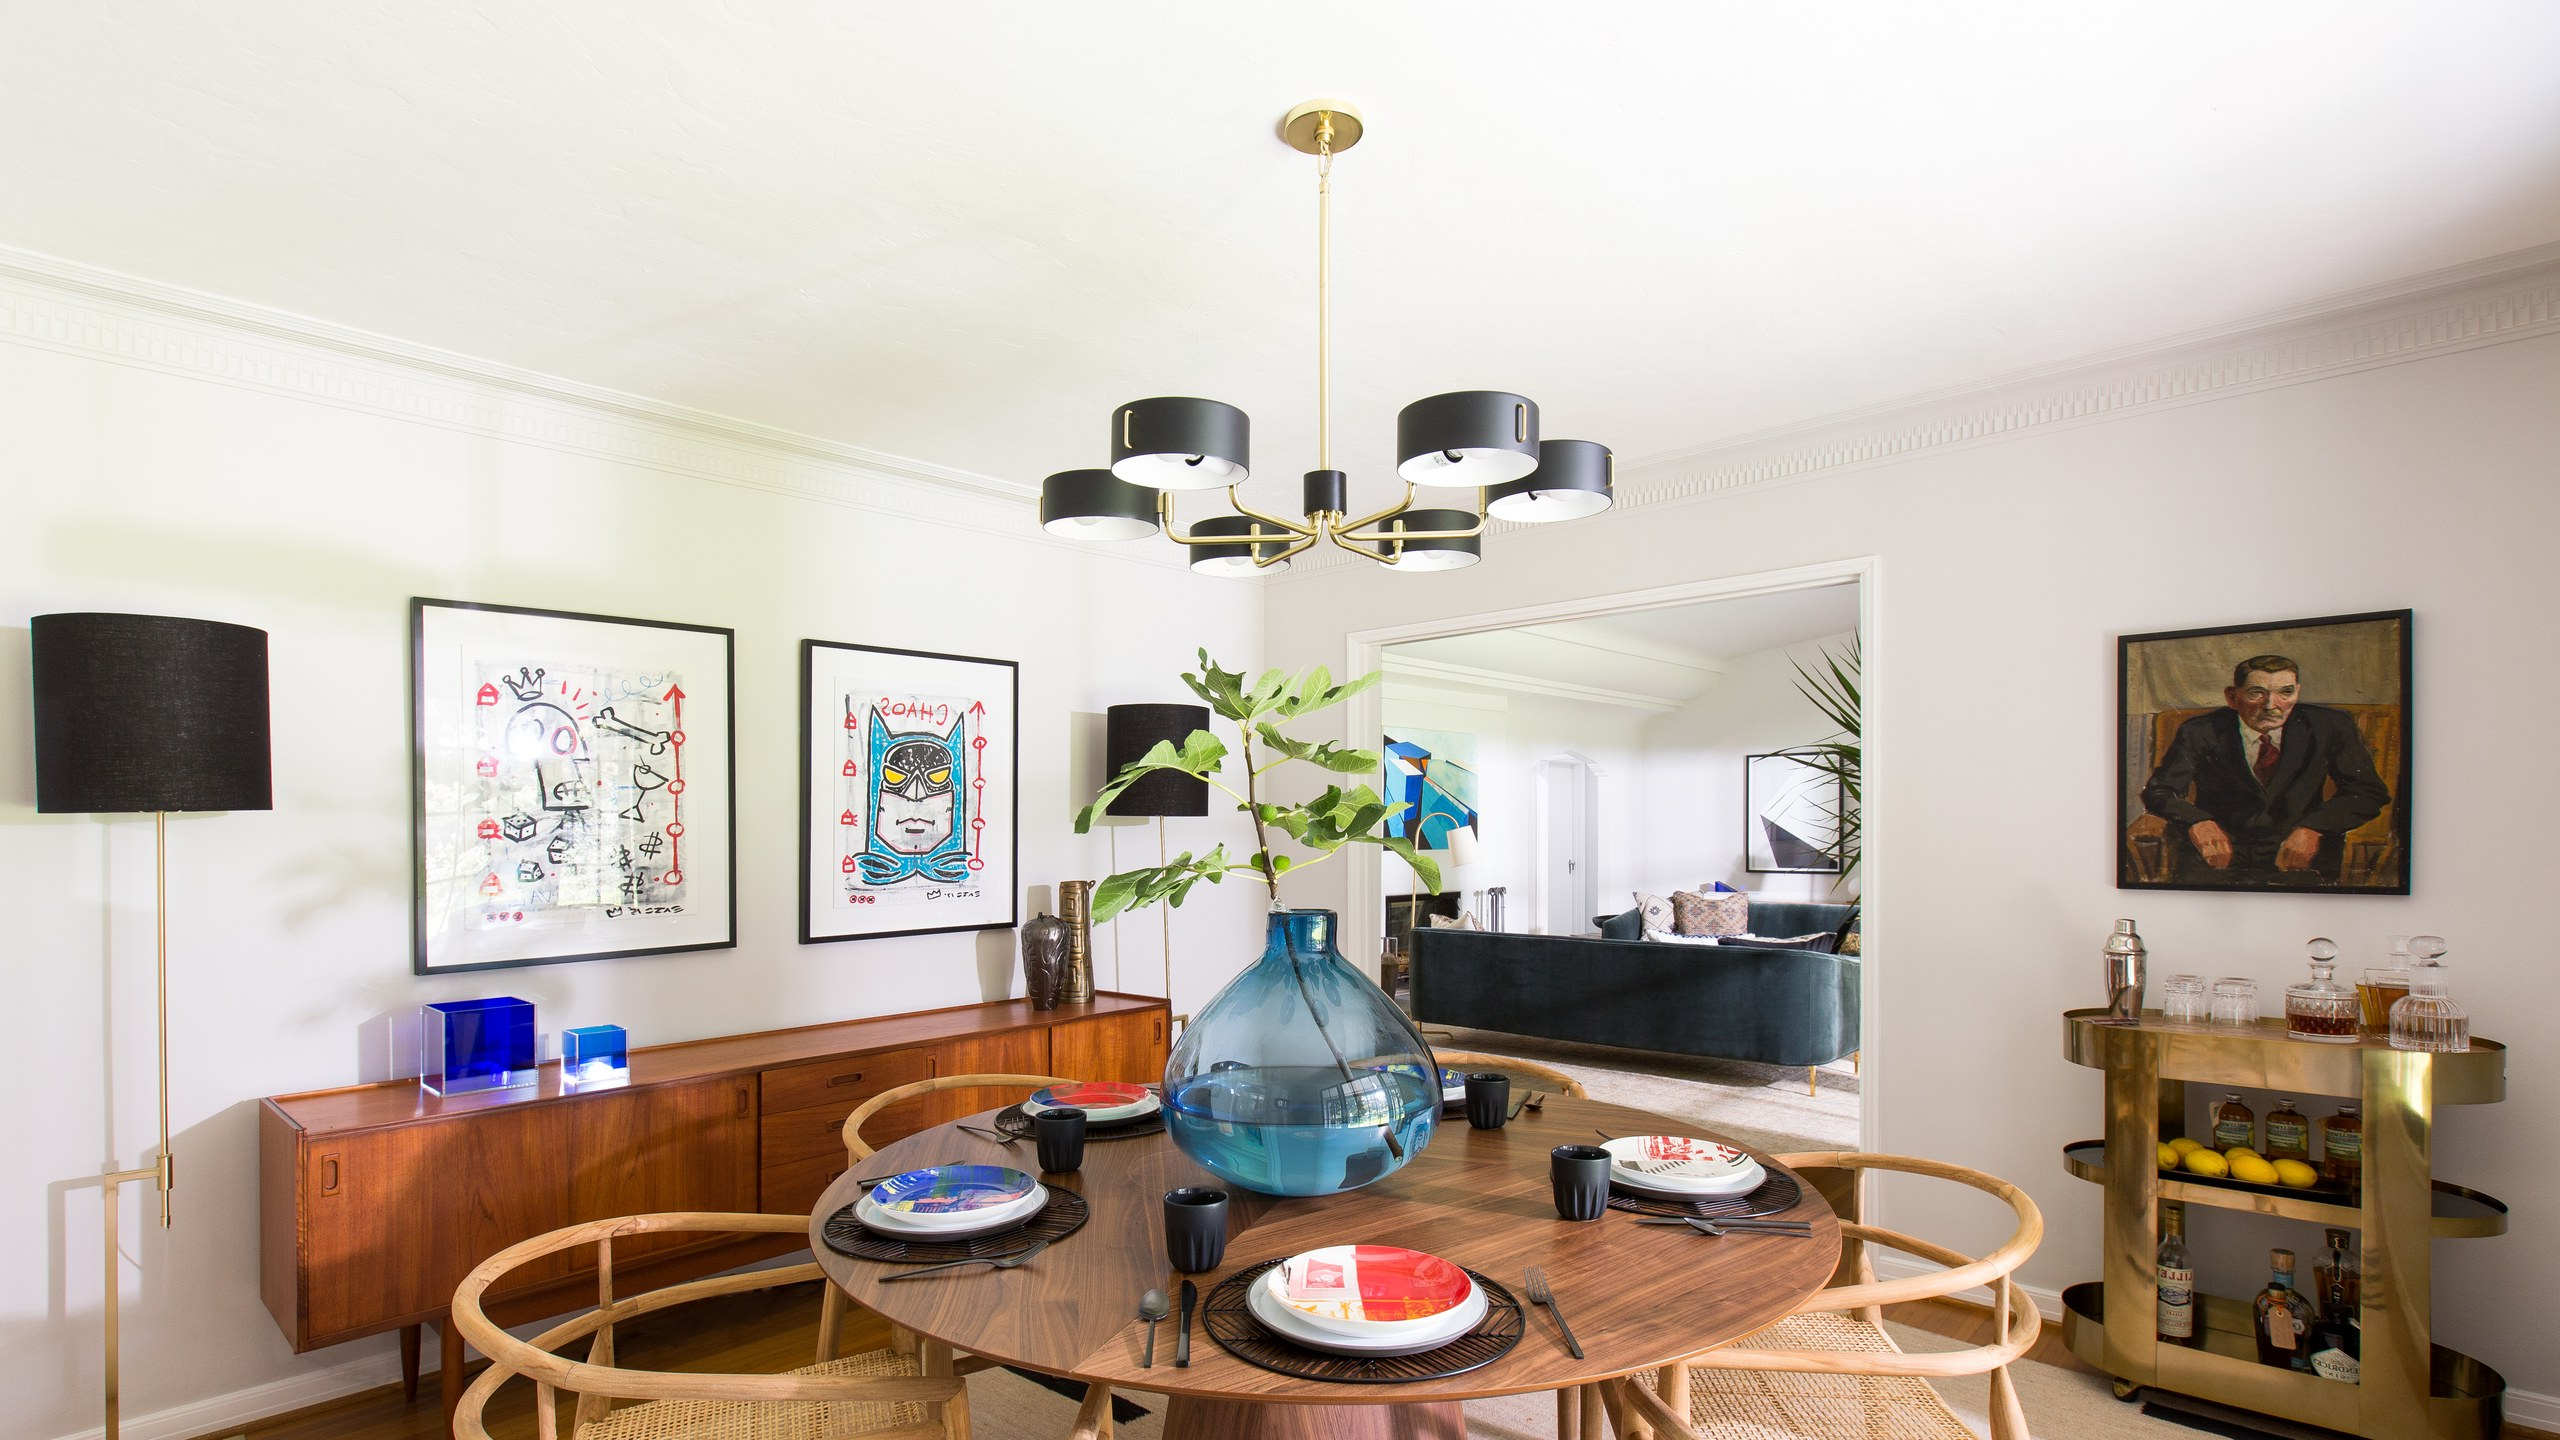 Most Recent Rustic Mid Century Modern 6 Seating Dining Tables In White And Natural Wood In 8 Midcentury Modern Decor & Style Ideas: Tips For Interior (View 8 of 30)